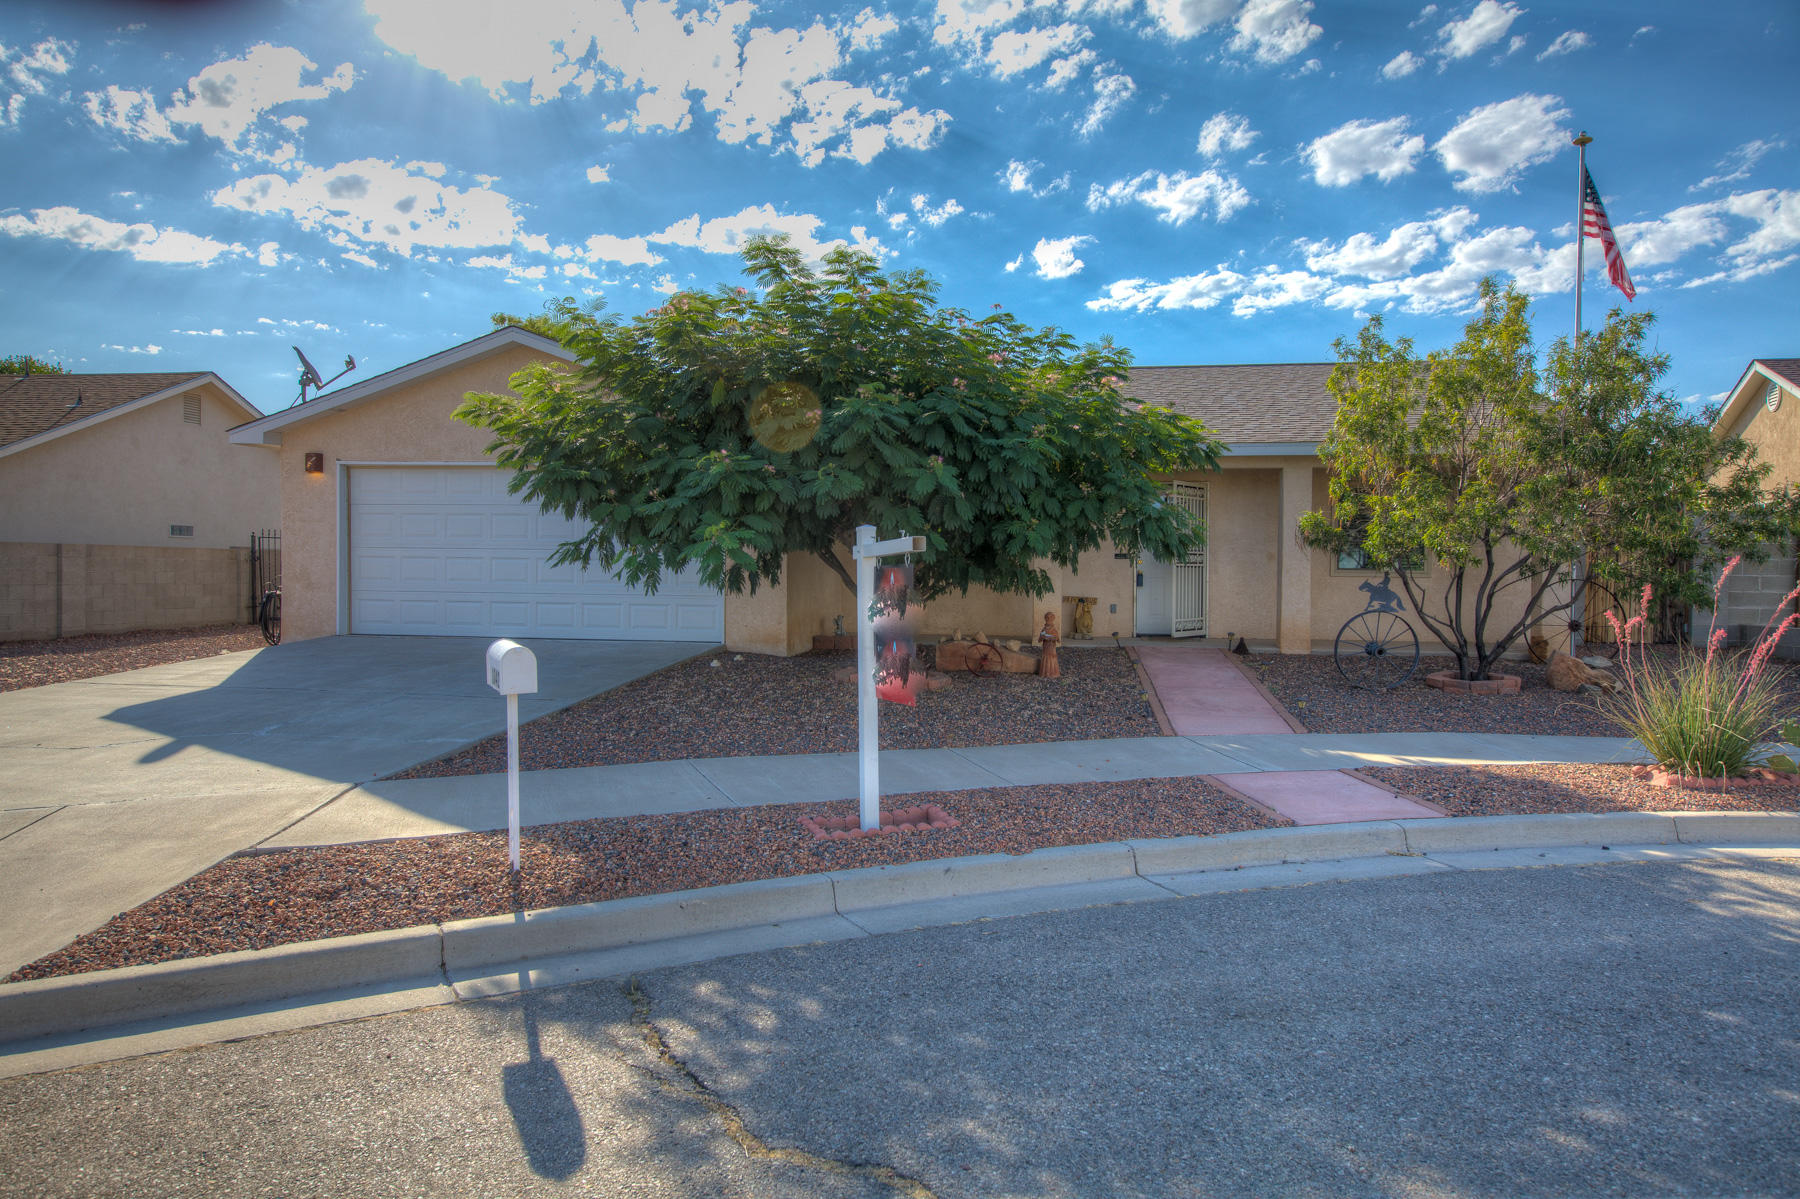 Fantastic opportunity to own a beautiful single story home in Los Lunas. Close to town and easy freeway access. Enjoy this 3 bedroom 1.75 bath home. Recently updated with refrigerated A/C. Move in ready